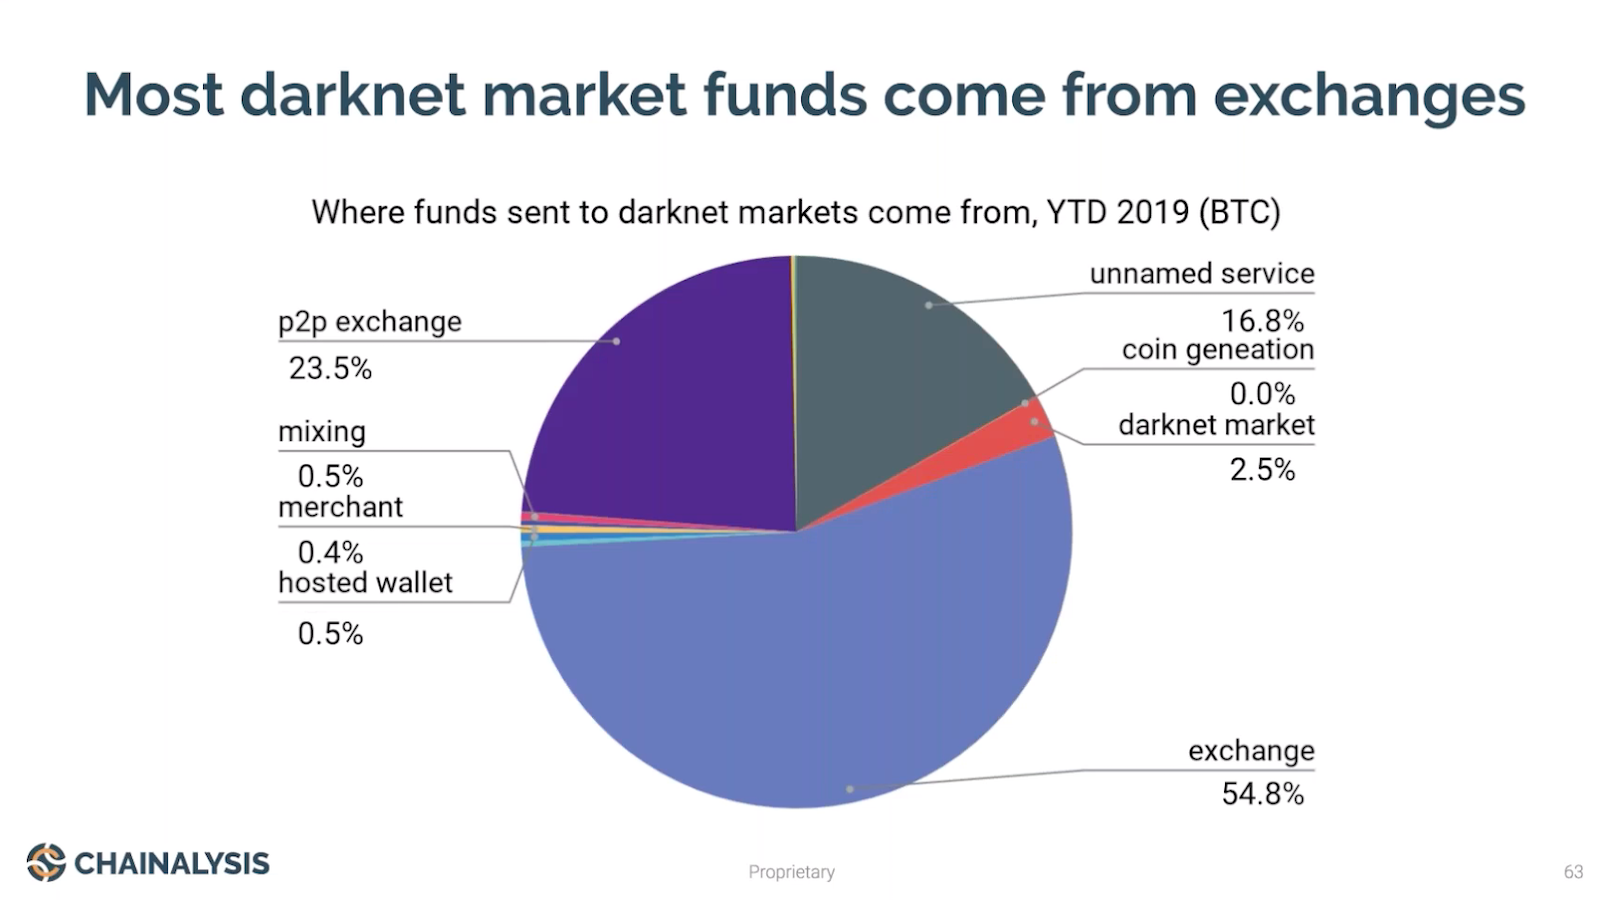 Where Funds Sent to Darkenet Markets Comes From